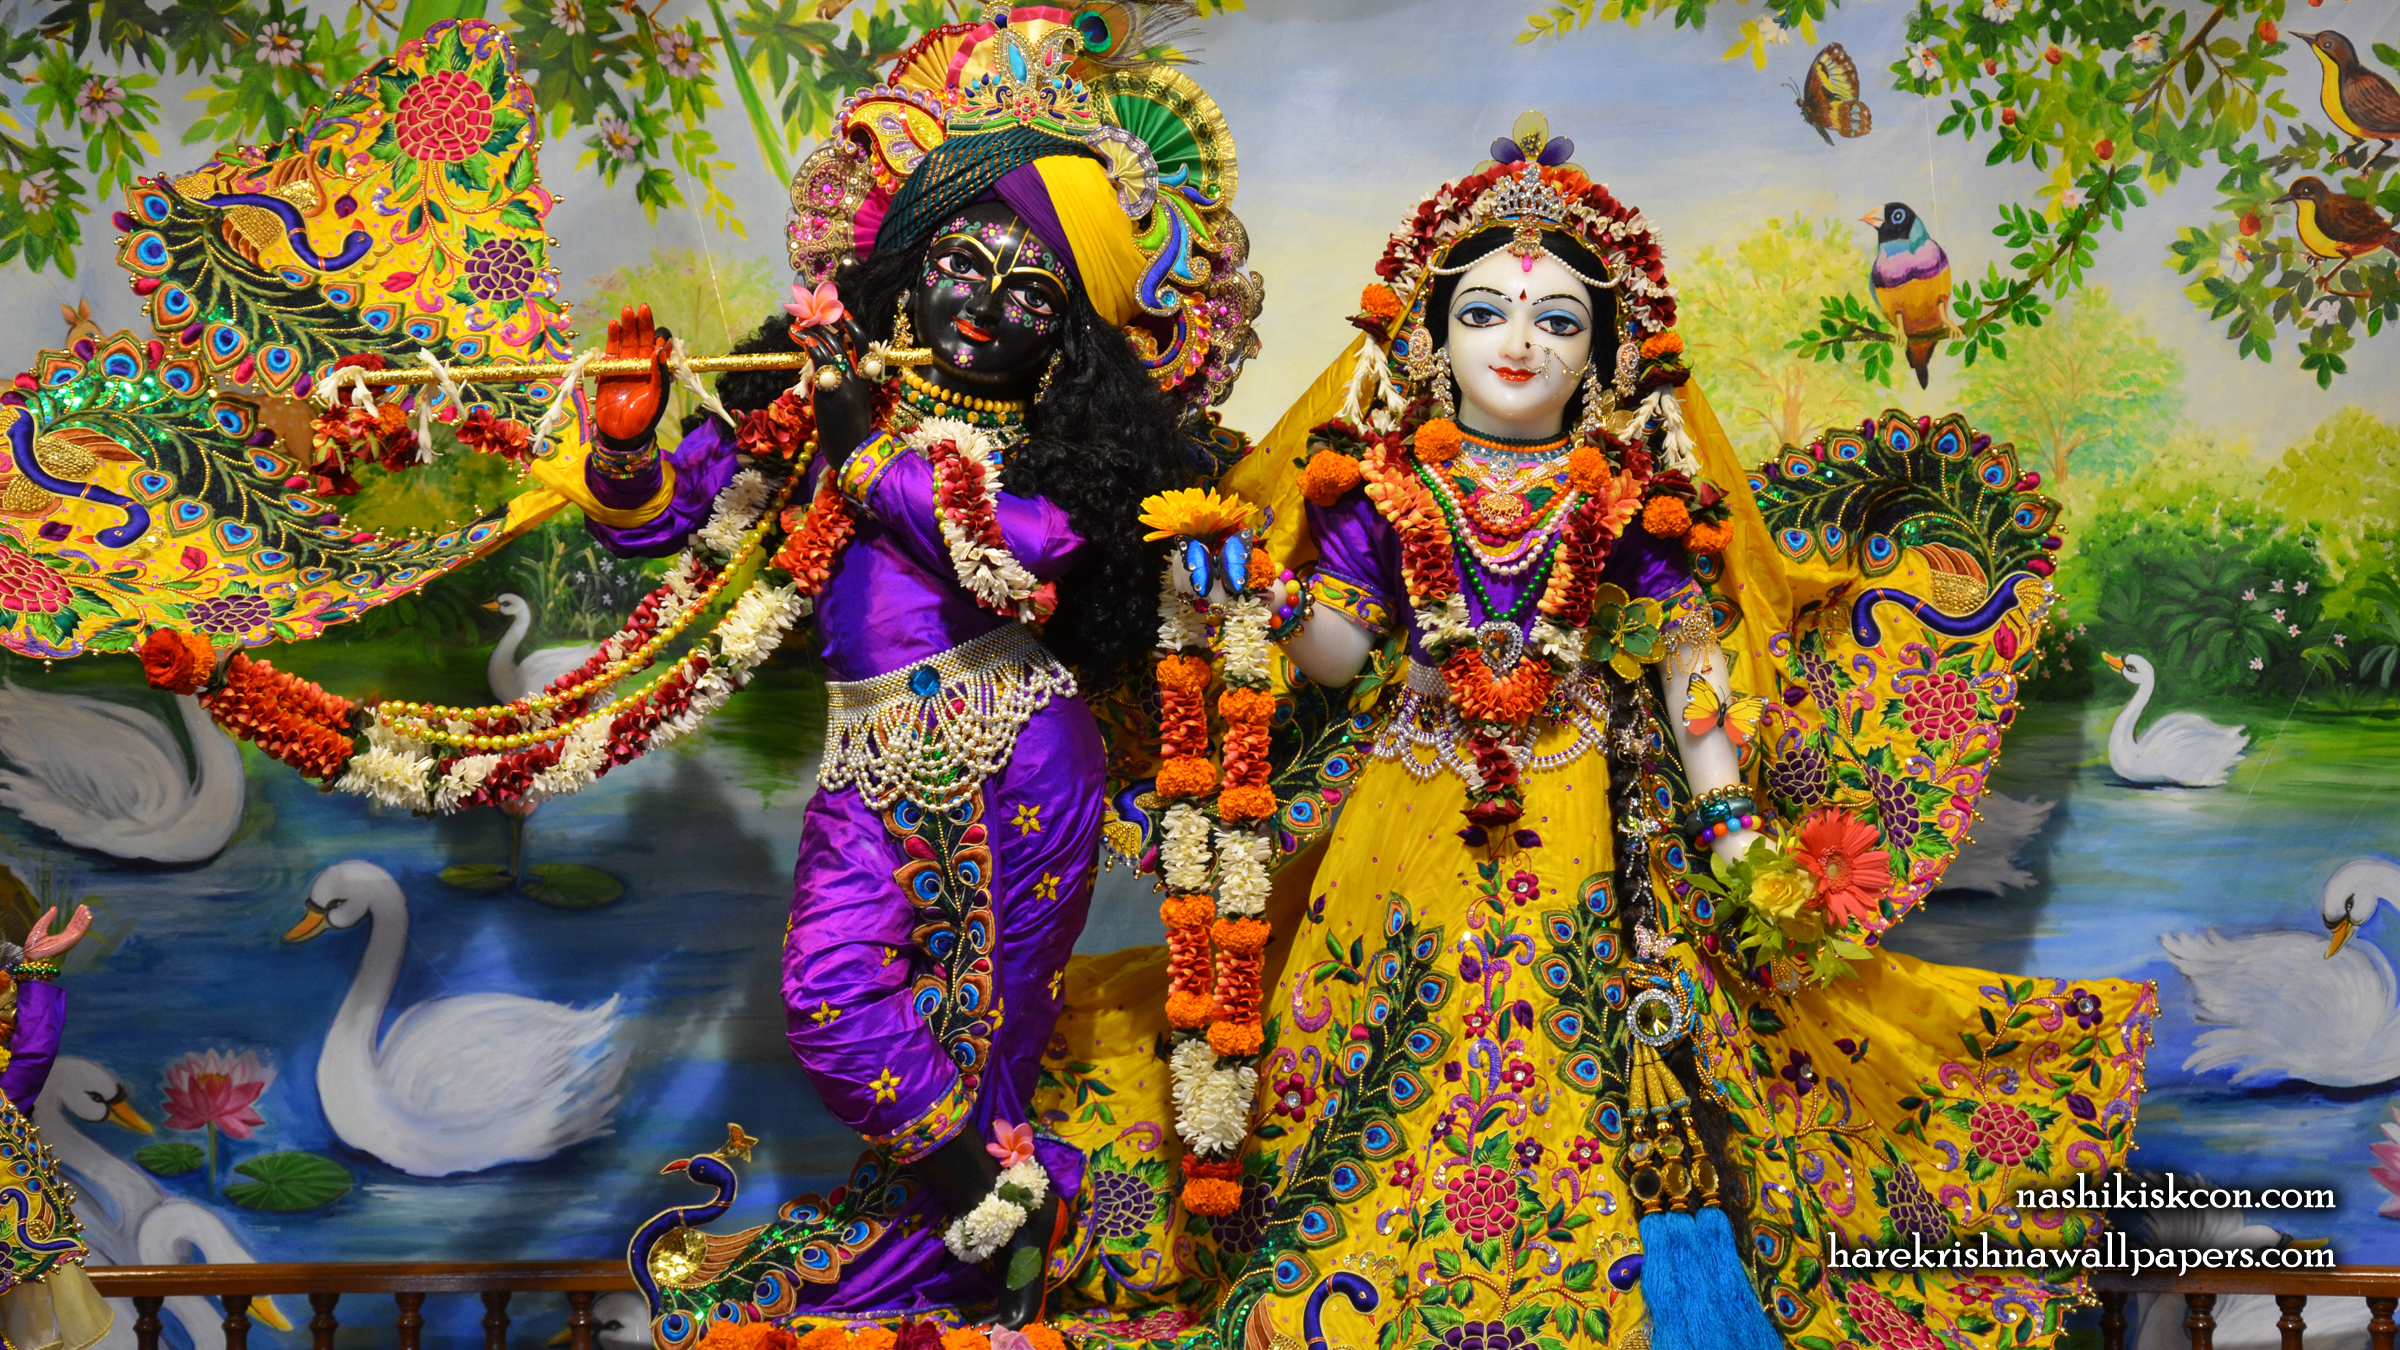 Sri Sri Radha Madan Gopal Wallpaper (009) Size 2400x1350 Download